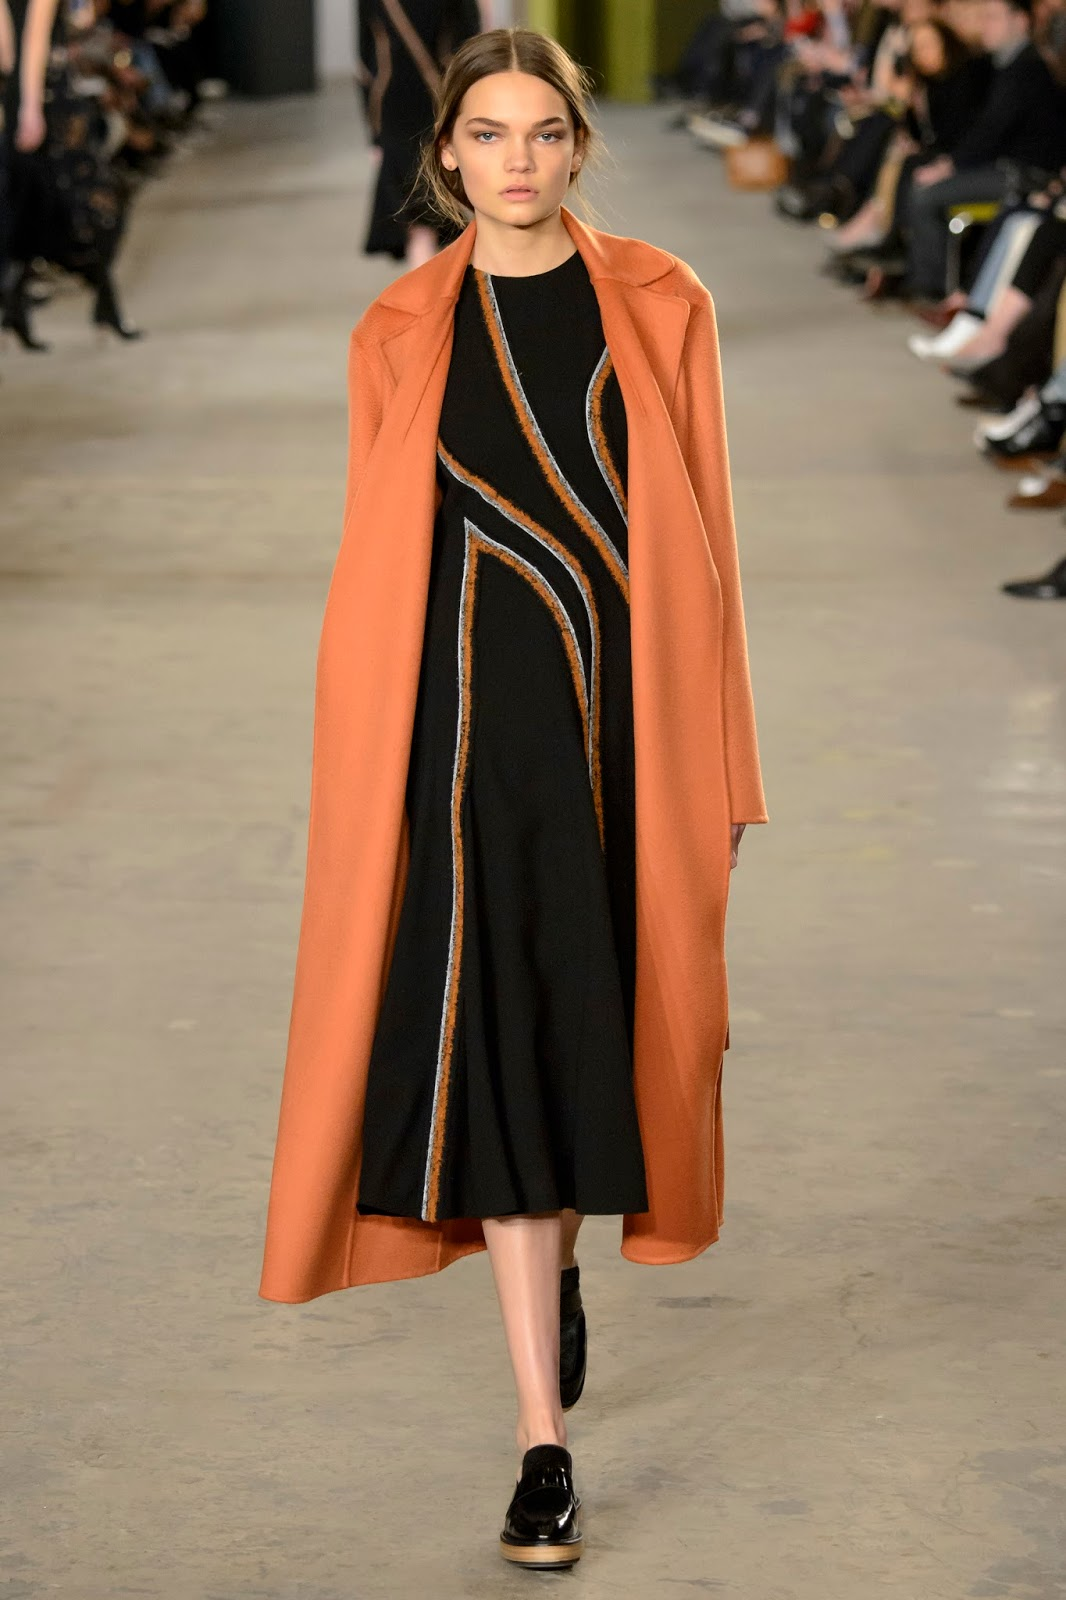 Boss Fall/Winter 2016, New York Fashion Week, NYFW best collections via www.fashionedbylove.co.uk